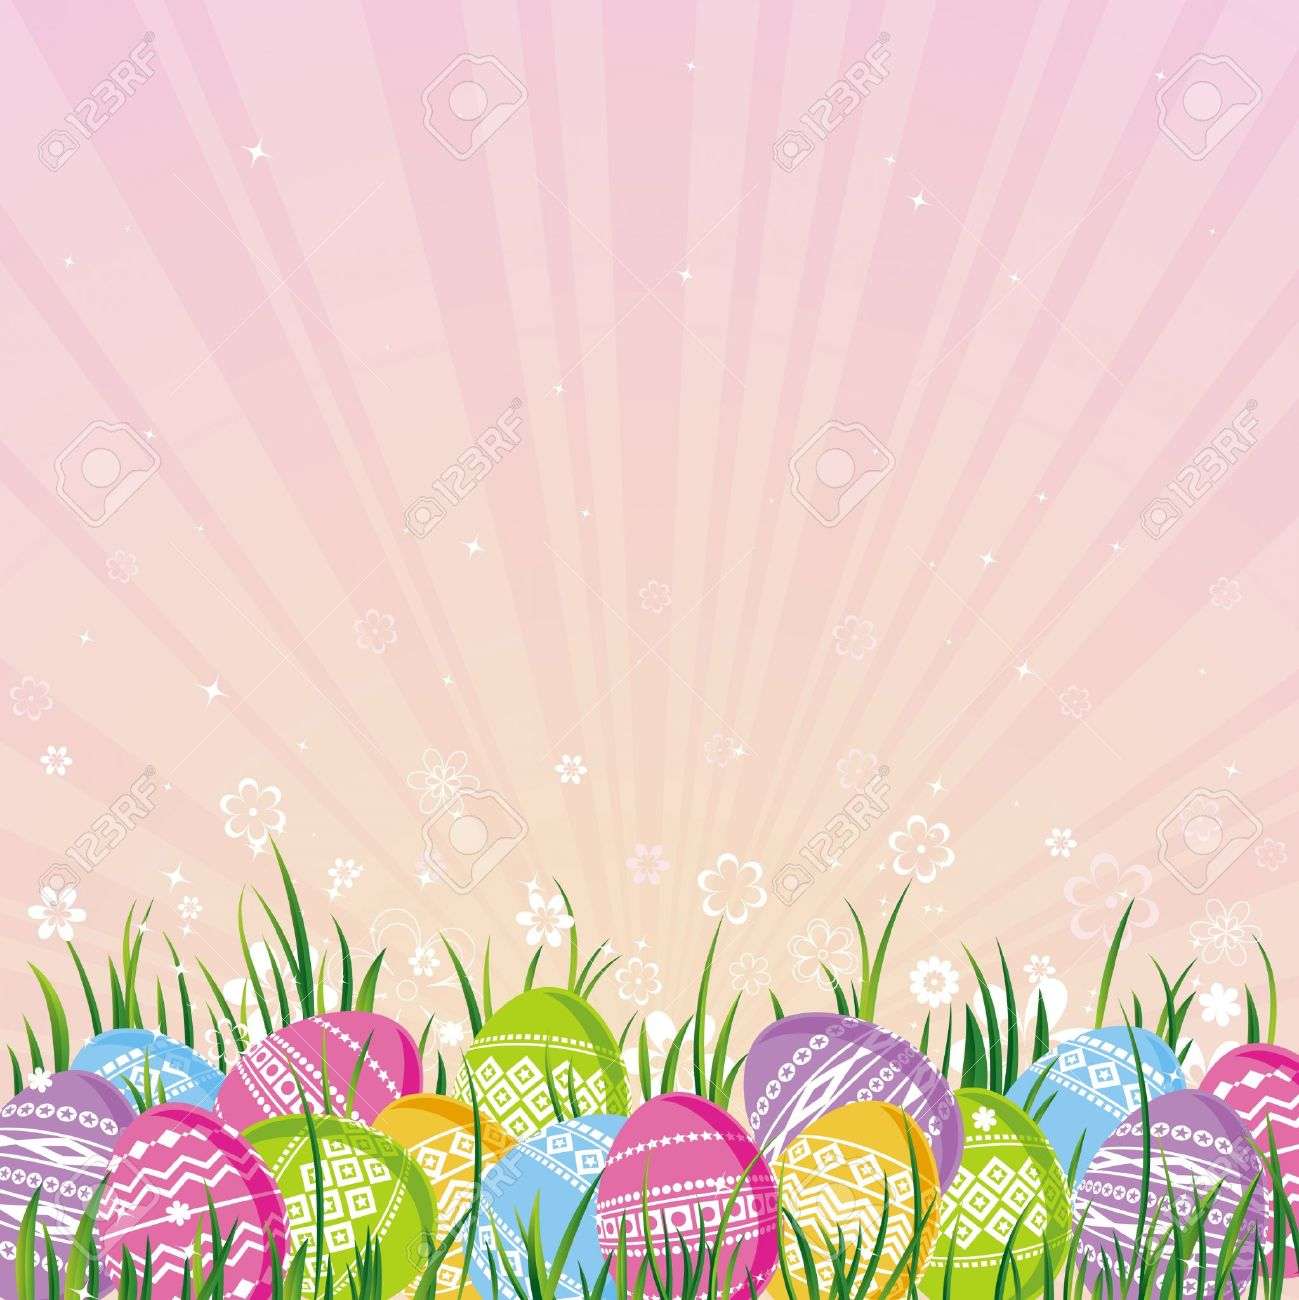 Easter backgrounds clipart   Clip Art Library 1299x1300